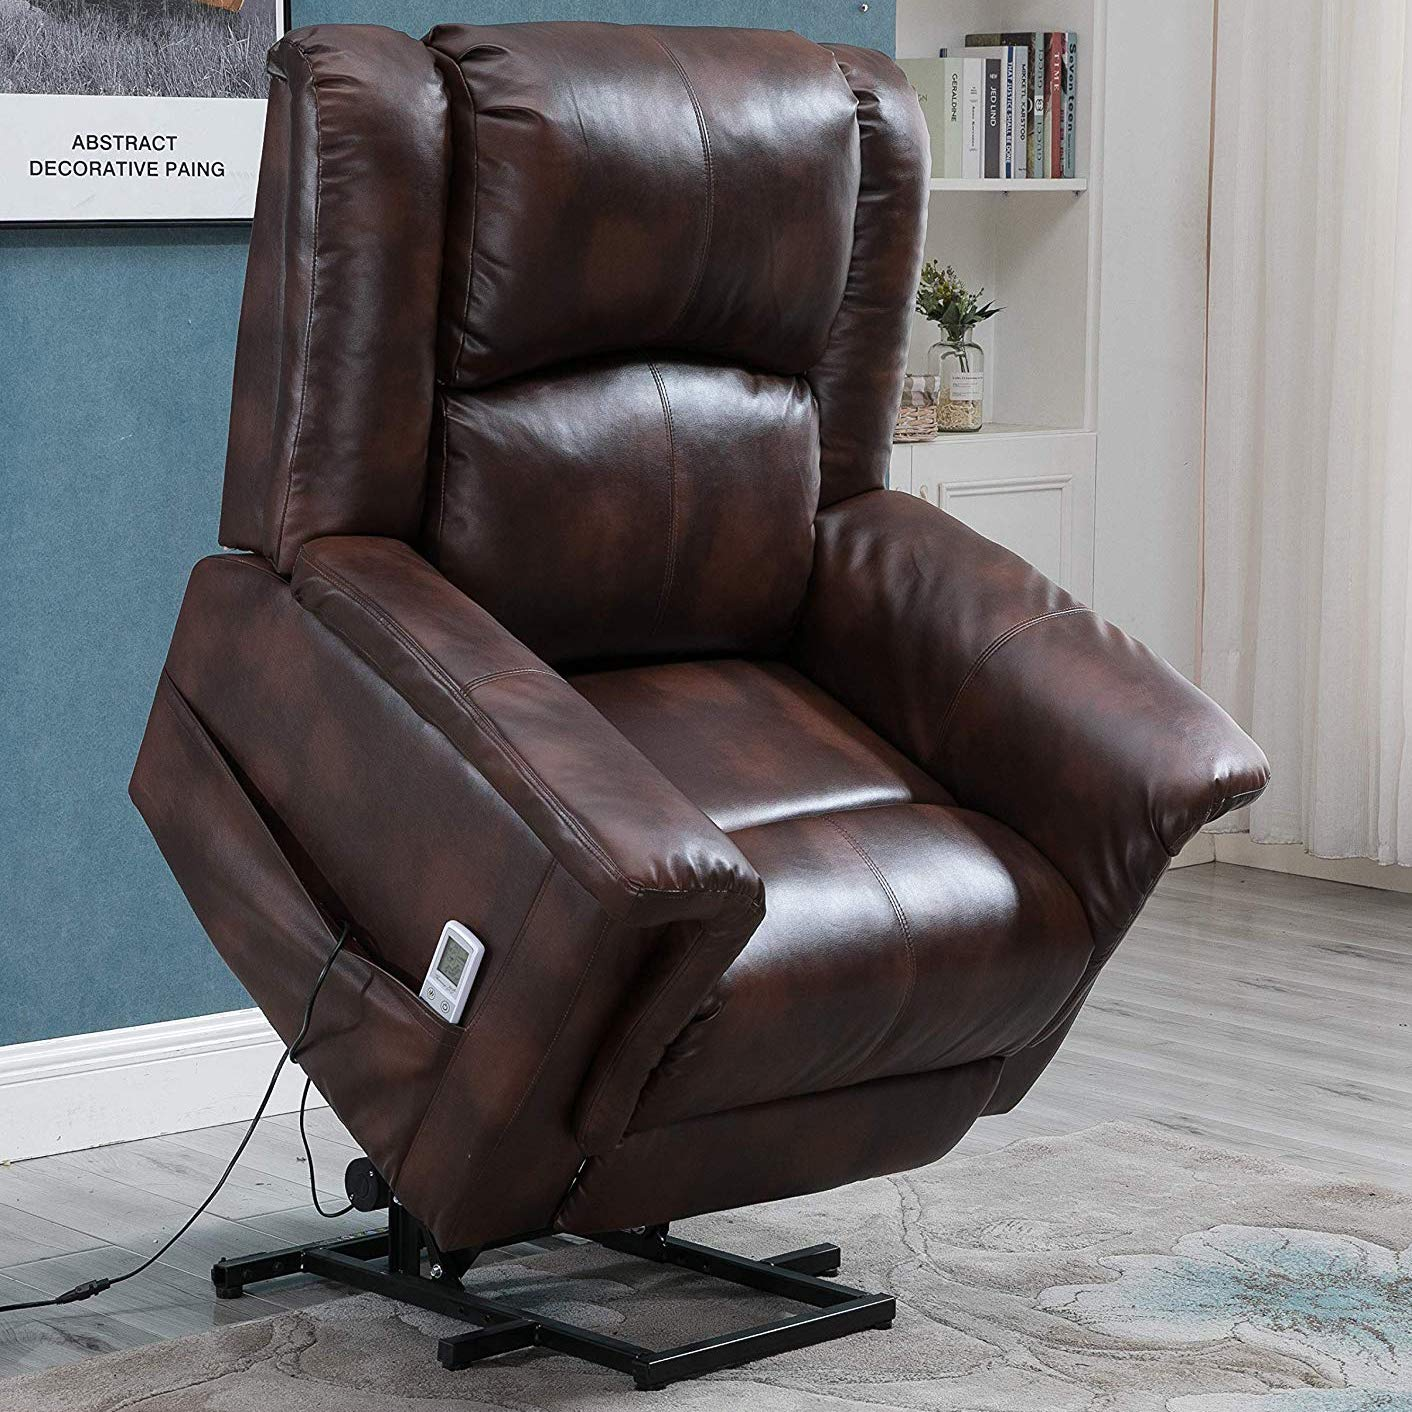 Esright Power Lift Chair Electric Recliner for Elderly Faux Leather Heated Vibration Massage with Remote Control, Brown by Esright